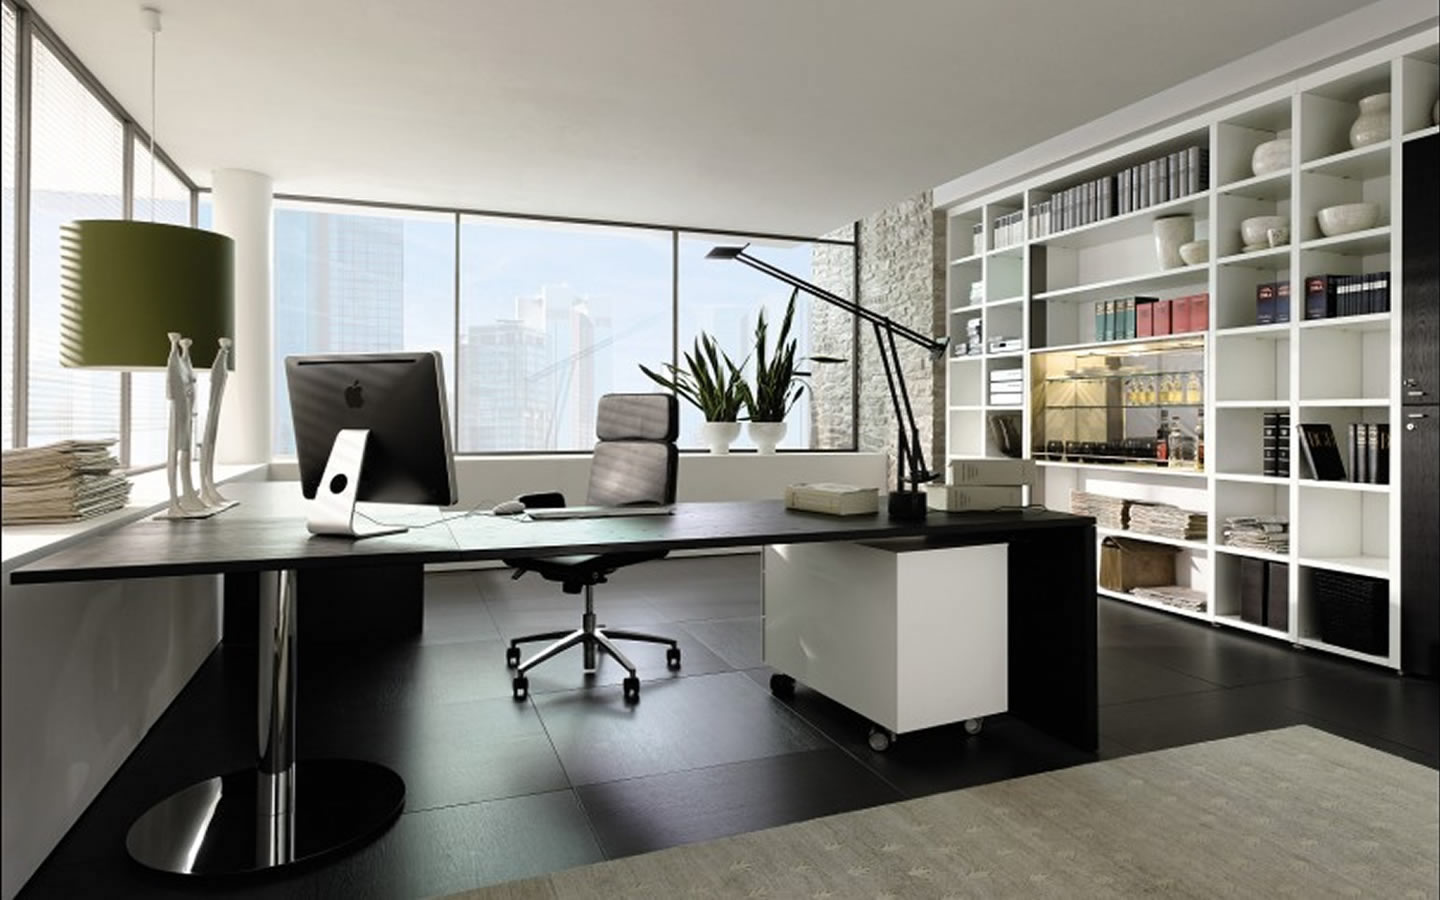 Feng shui office decor ideas